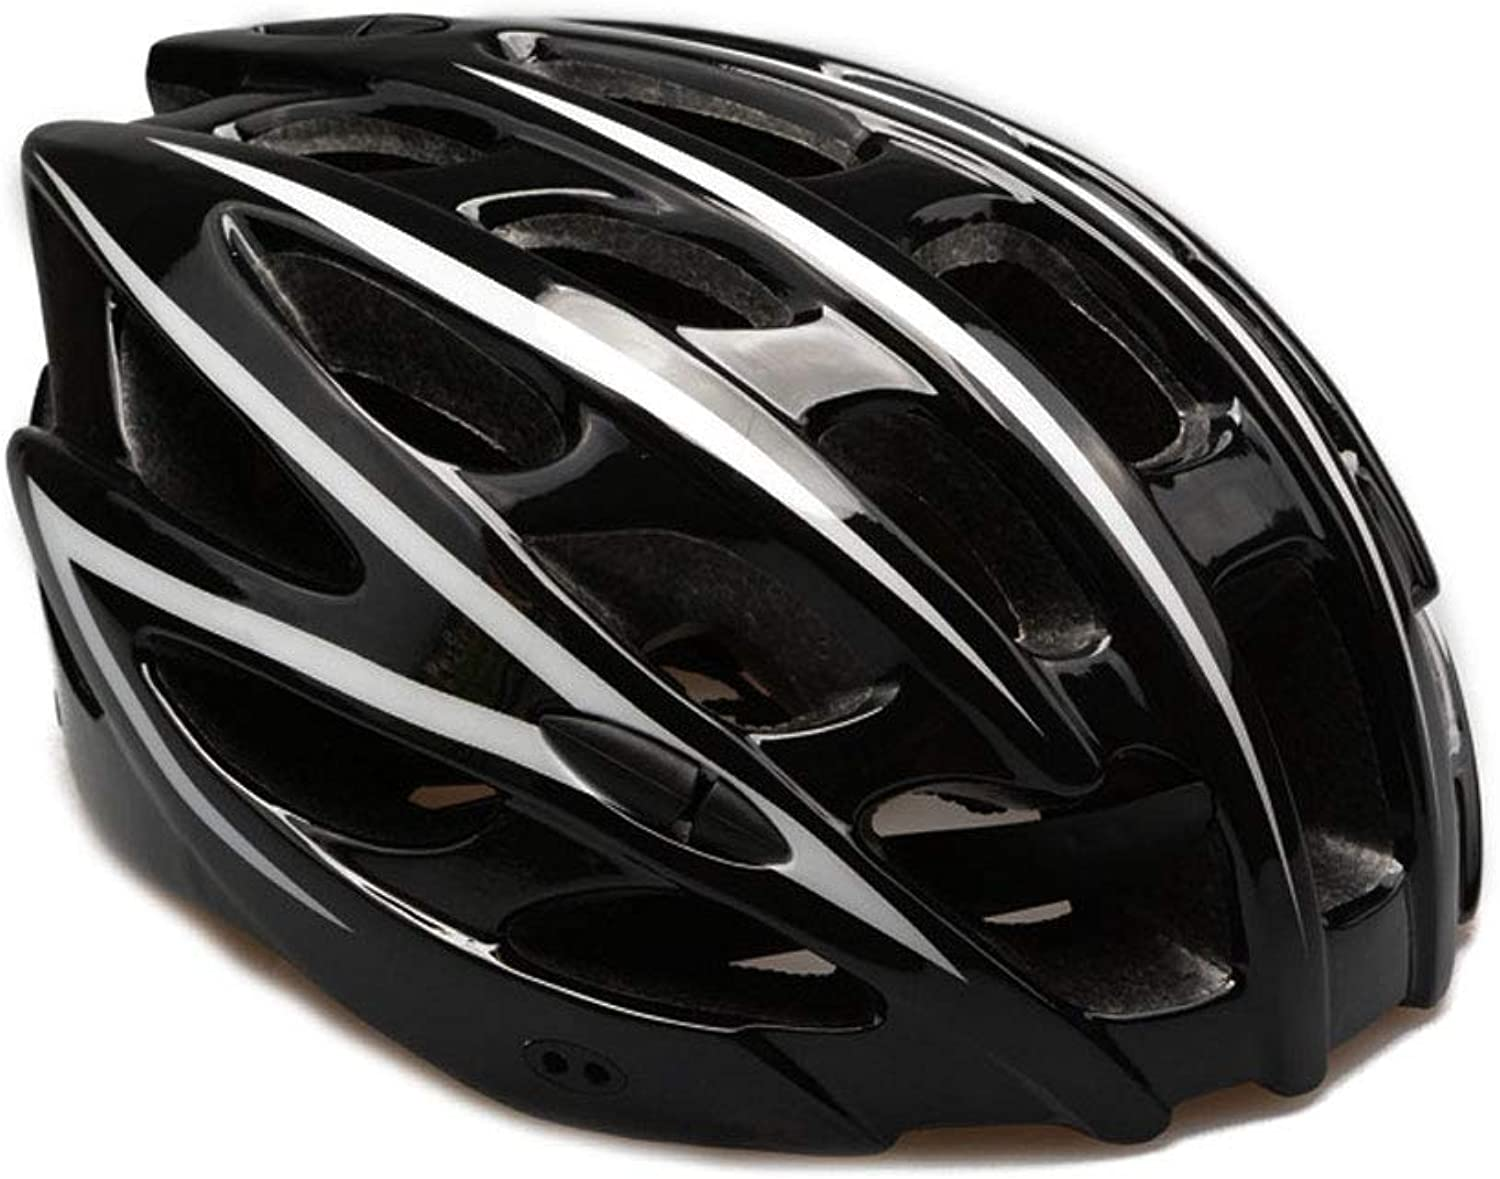 Ride Helmet,Road Bike Integrated molding Safety Ultralight Male and Female Adults Outdoor Gear Adult Roller Skating Helmet,Black